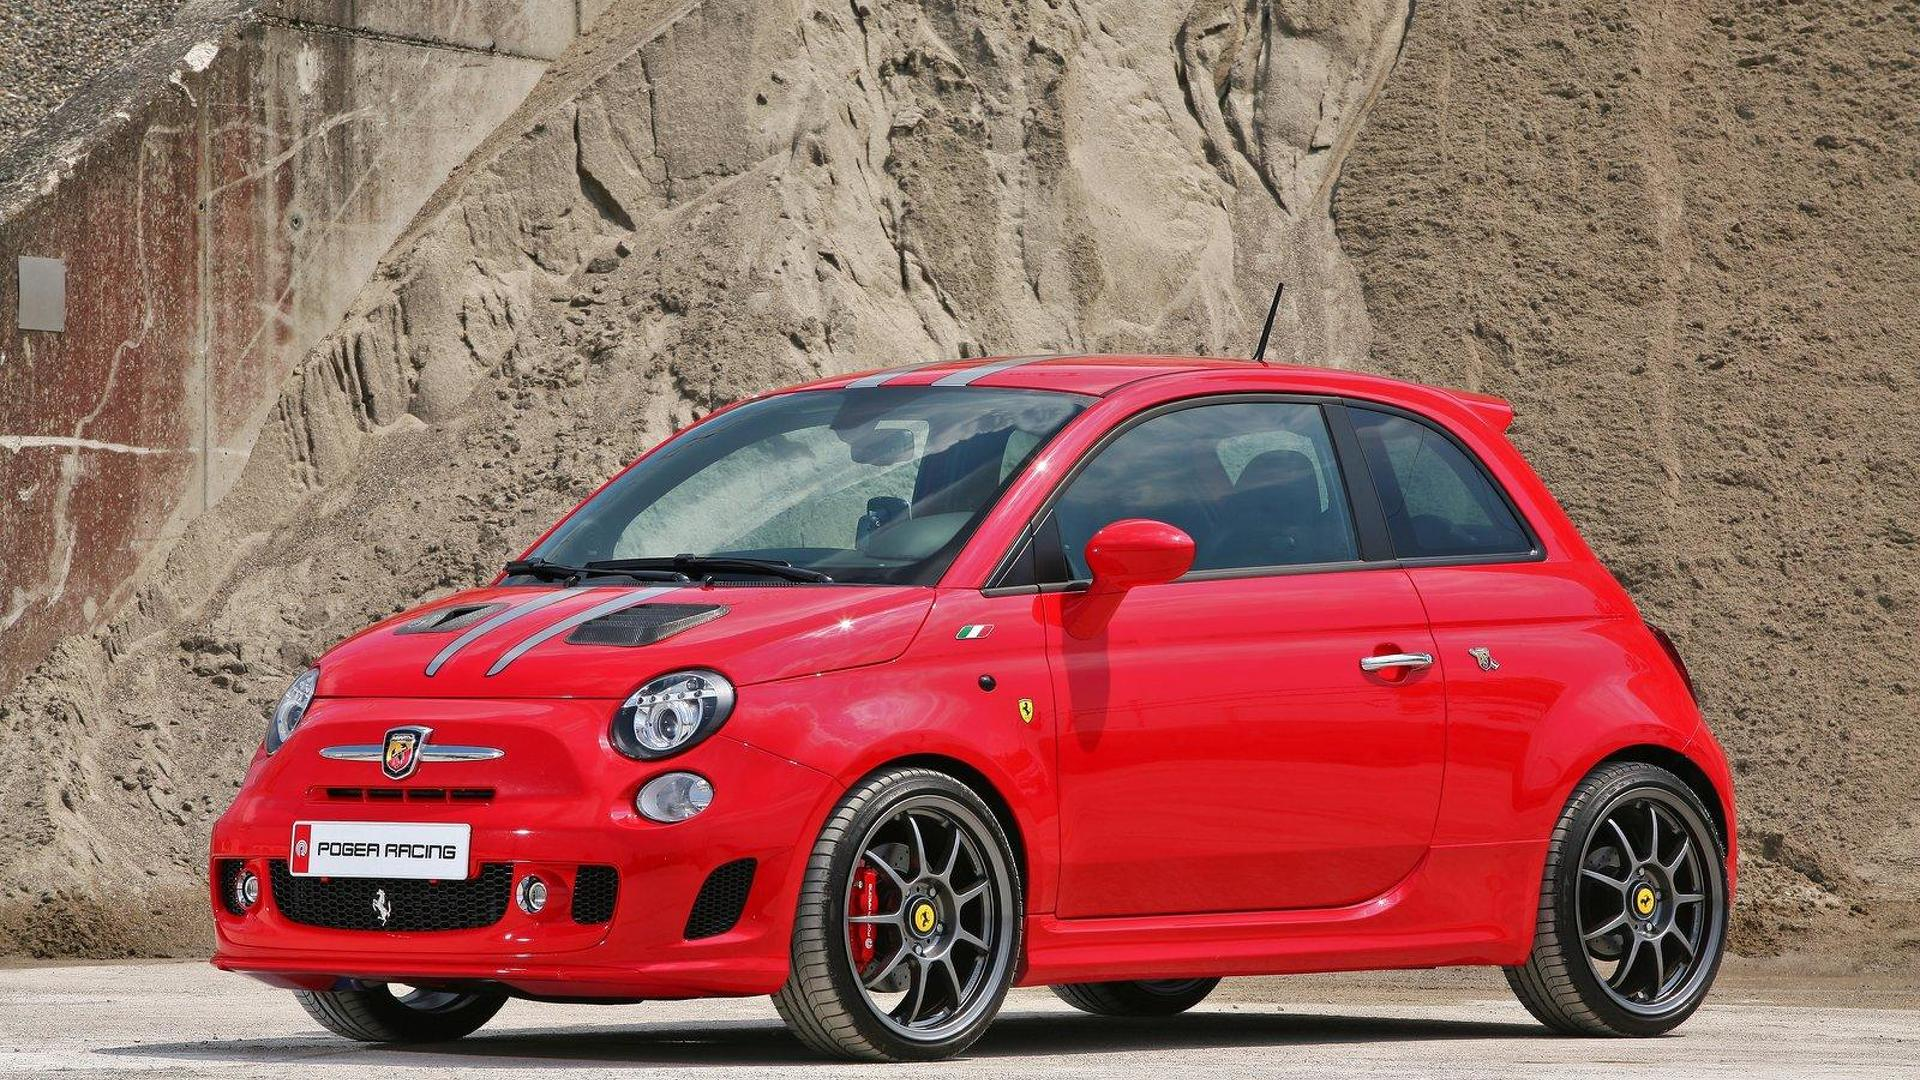 Fiat 500 Ferrari Dealers Edition with 268 PS by Pogea Racing